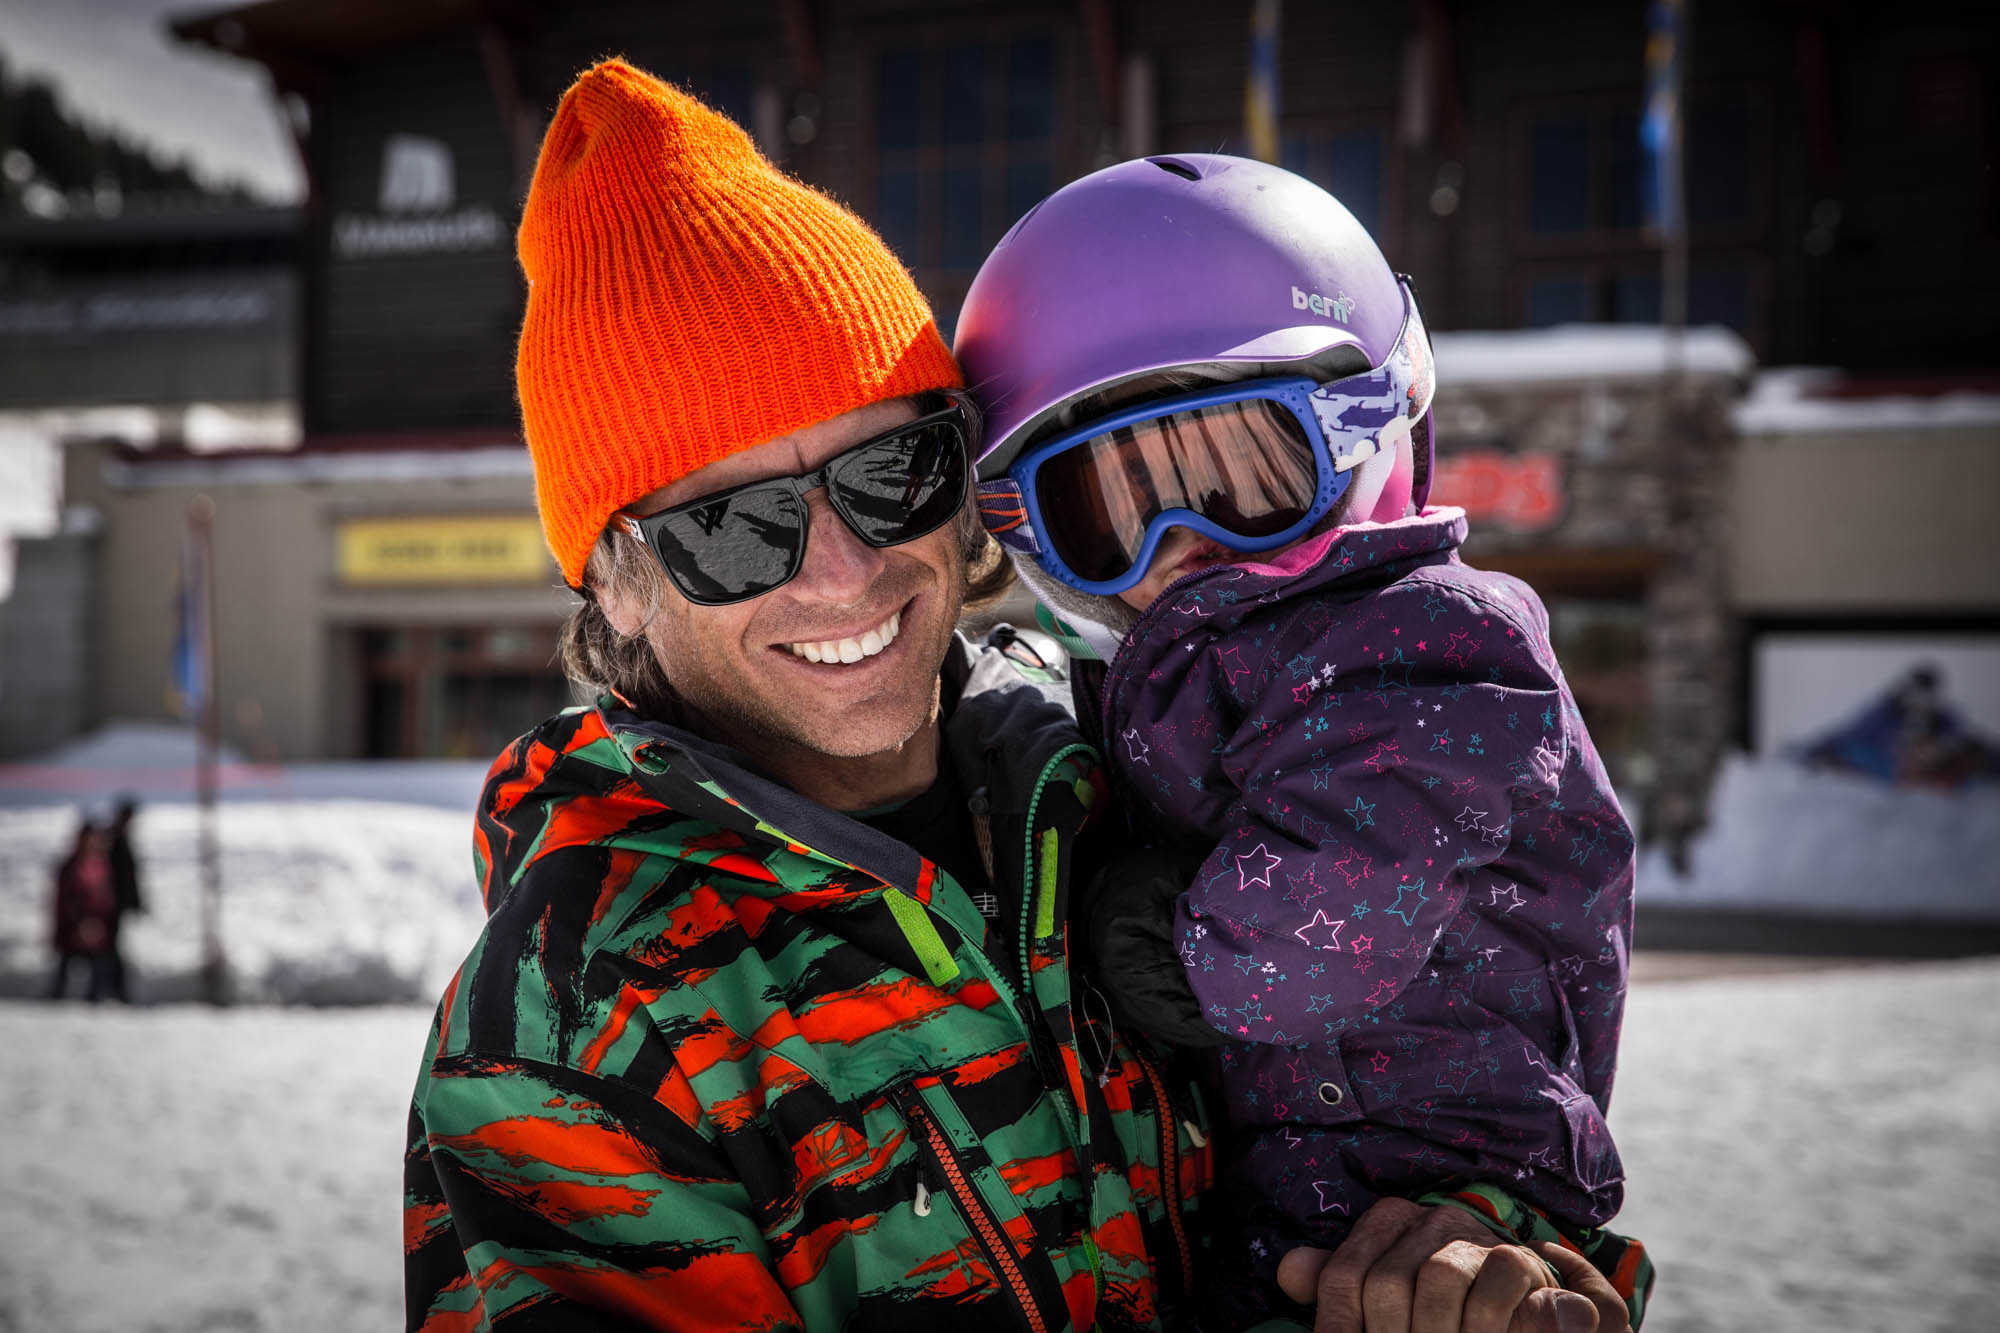 Local legend and big mountain pioneer Steve Klassen and his daughter. Klassen, who owns Wave Rave snowboard shop, is one of the reasons Mammoth is a snowboarding mecca, having fostered an environment that produced riders like Eric and John Jackson,  and before them, Billy and Jeff Anderson.